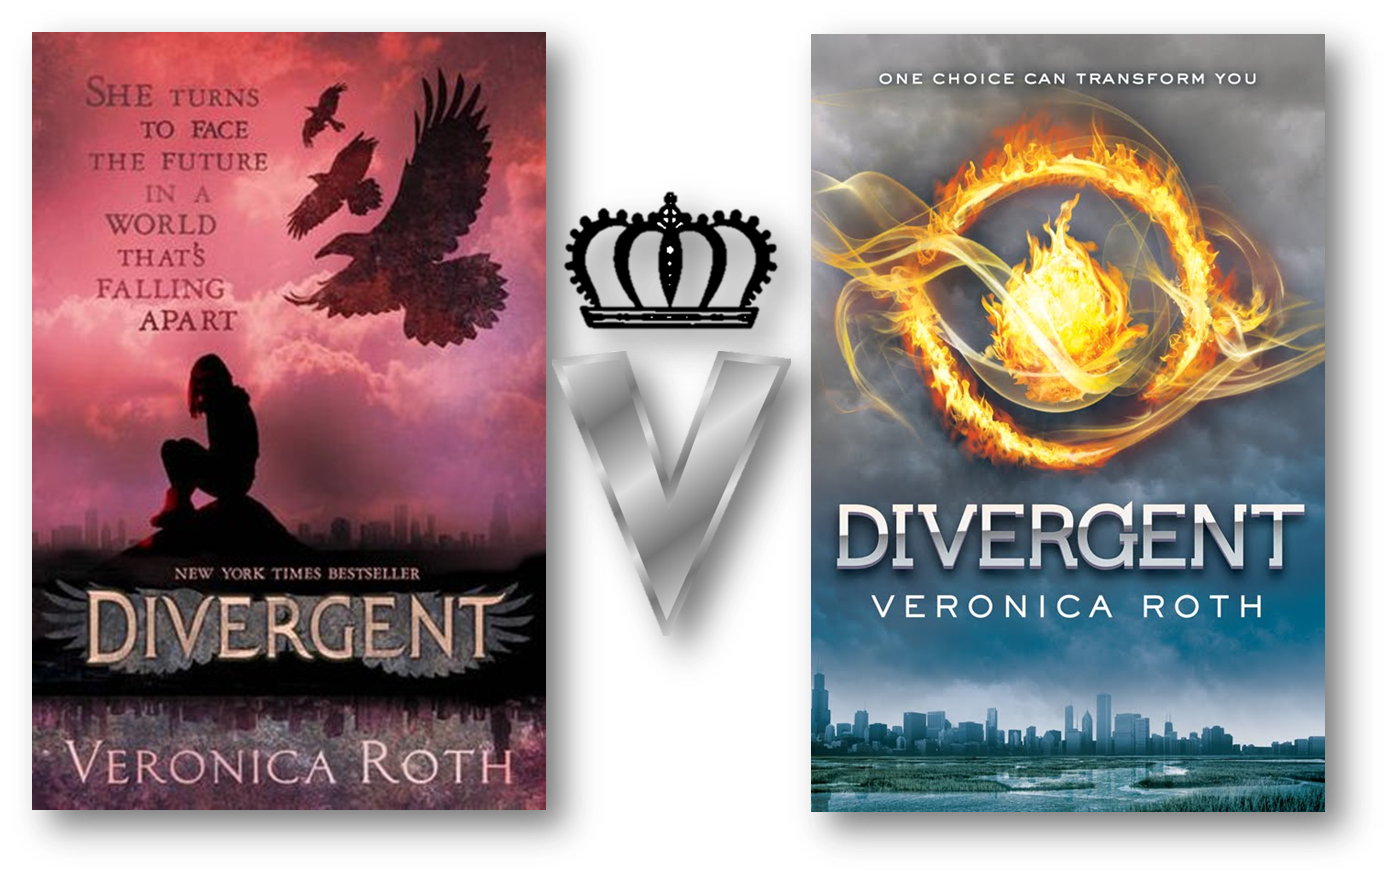 Divergent Book Cover Pictures : The queen of teen fiction feature but what about cover